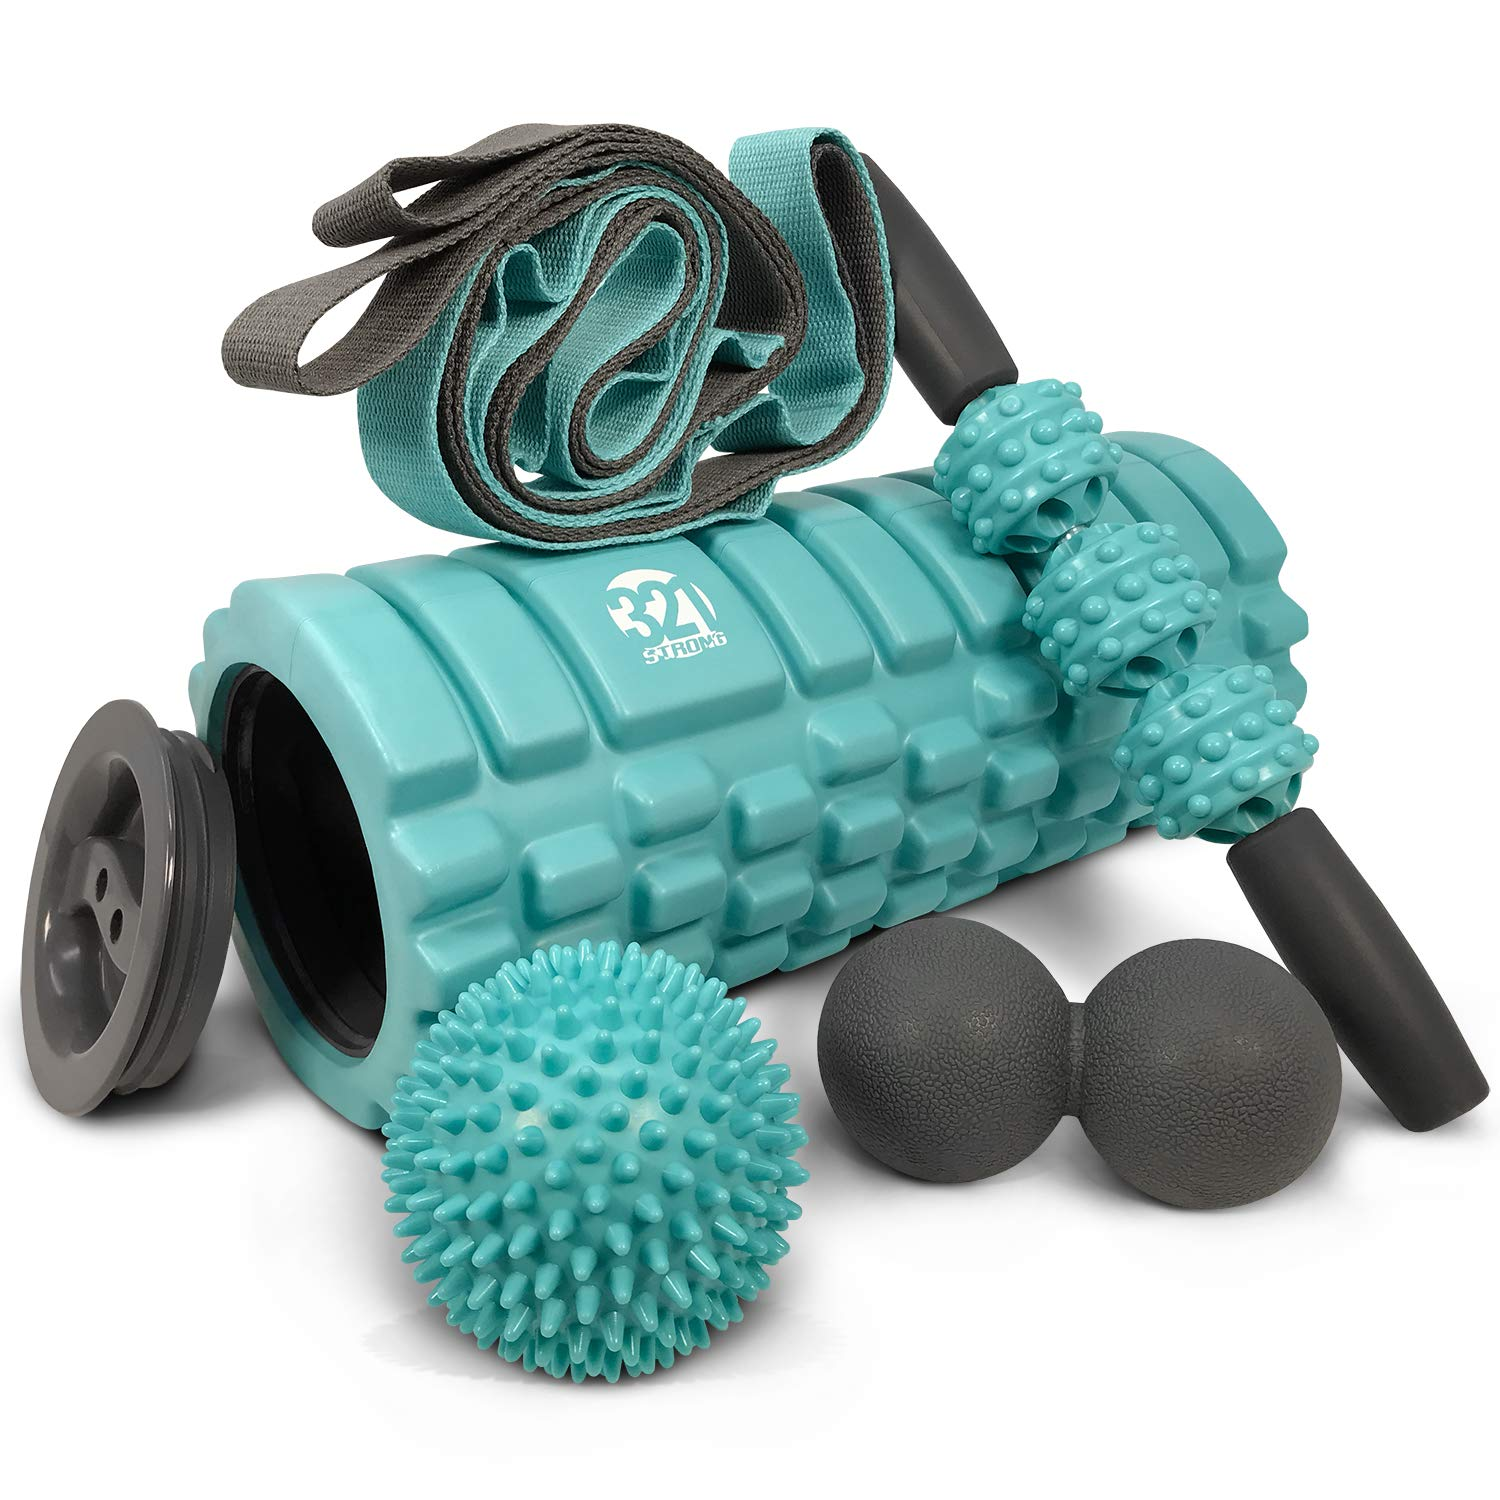 321 STRONG 5 in 1 Foam Roller Set Includes Hollow Core Massage Roller with End Caps, Muscle Roller Stick, Stretching Strap, Double Lacrosse Peanut, Spikey Plantar Fasciitis Ball, All in Giftable Box by 321 STRONG